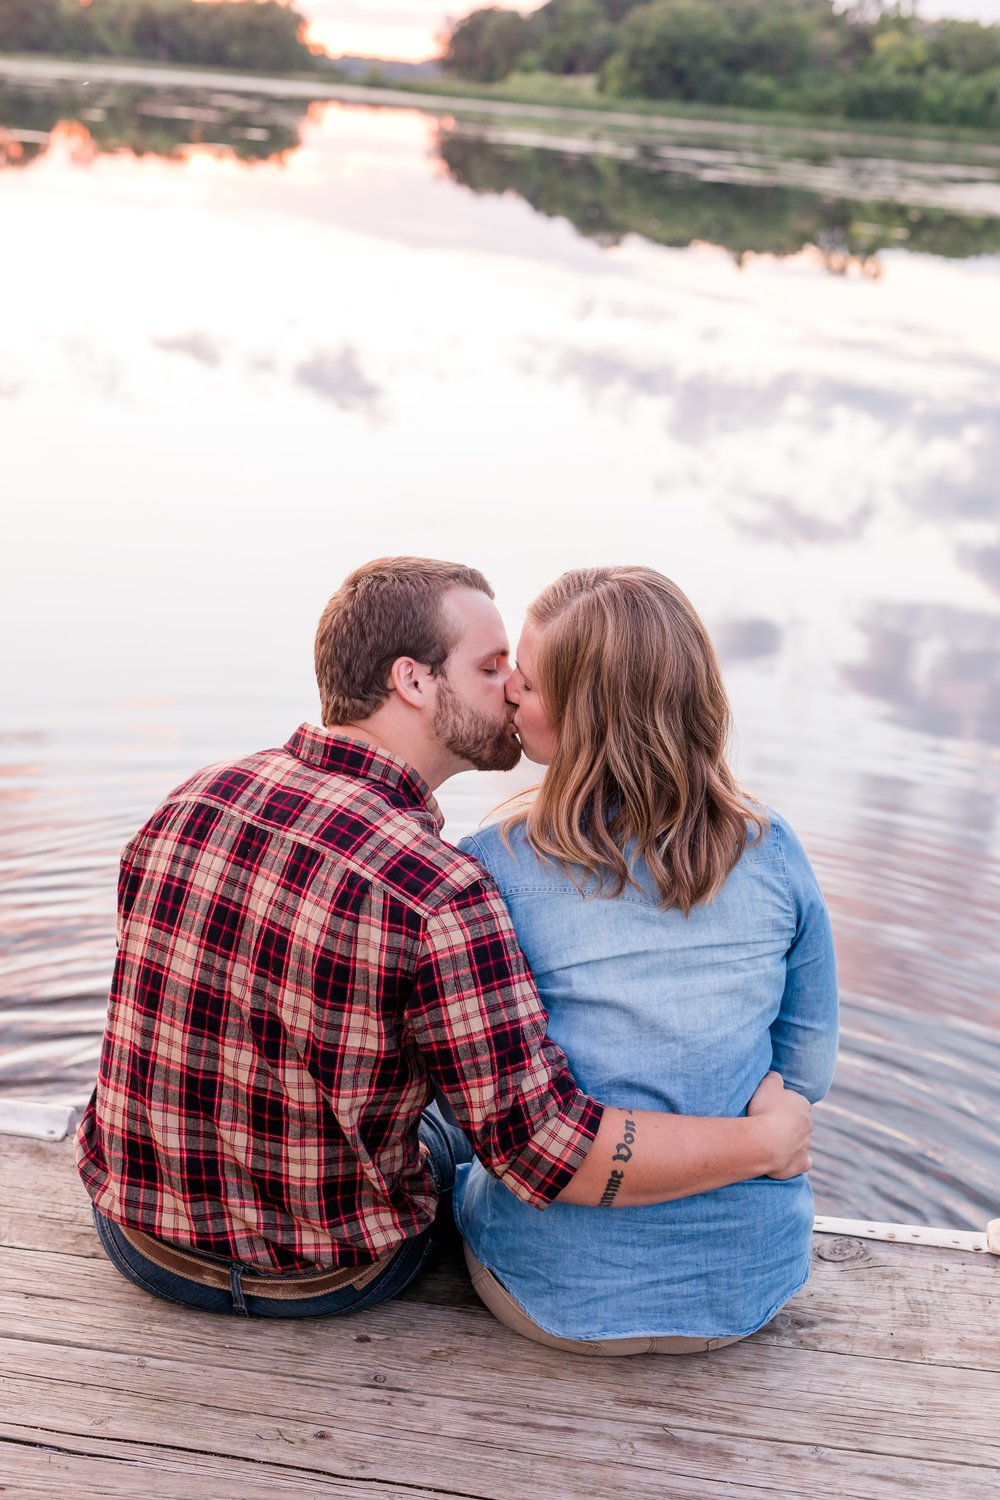 AmberLangerudPhotography_Countryside Engagement Session in Minnesota_3143.jpg